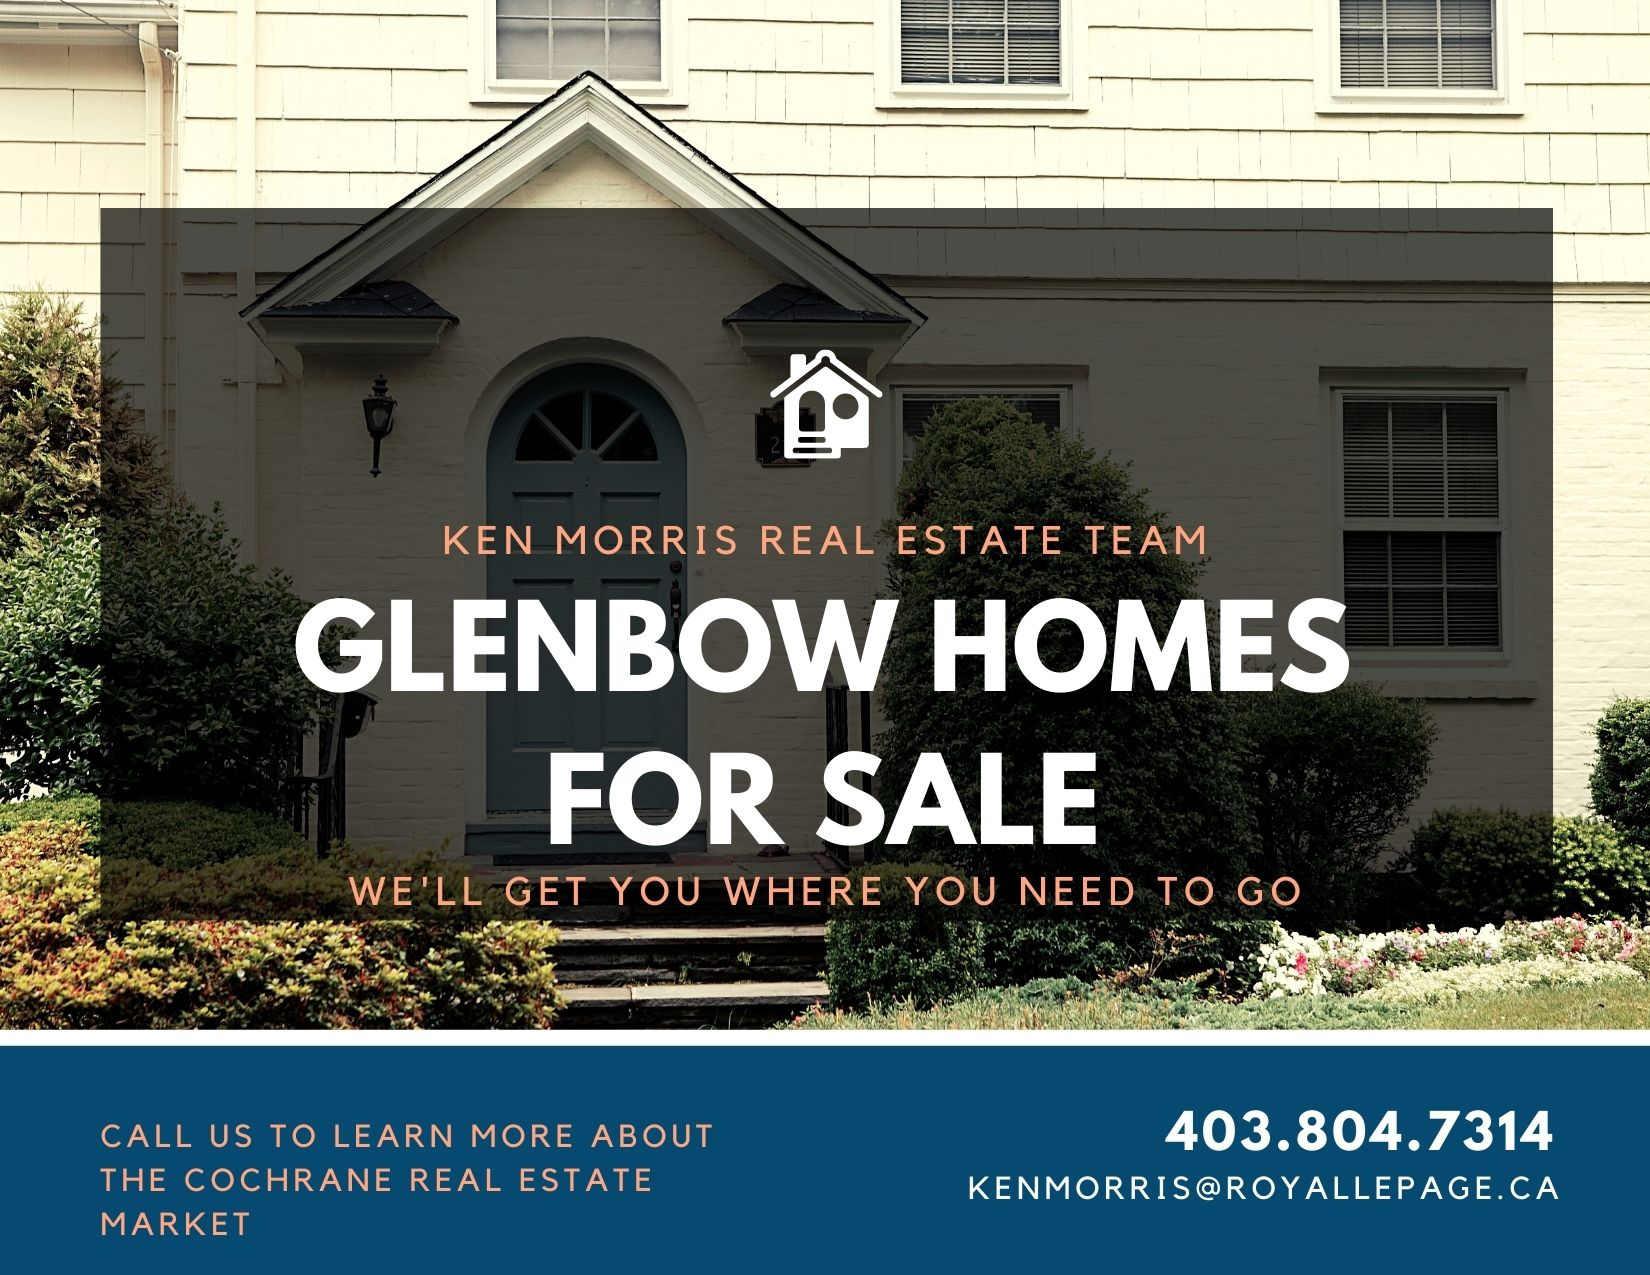 GLENBOW HOMES FOR SALE